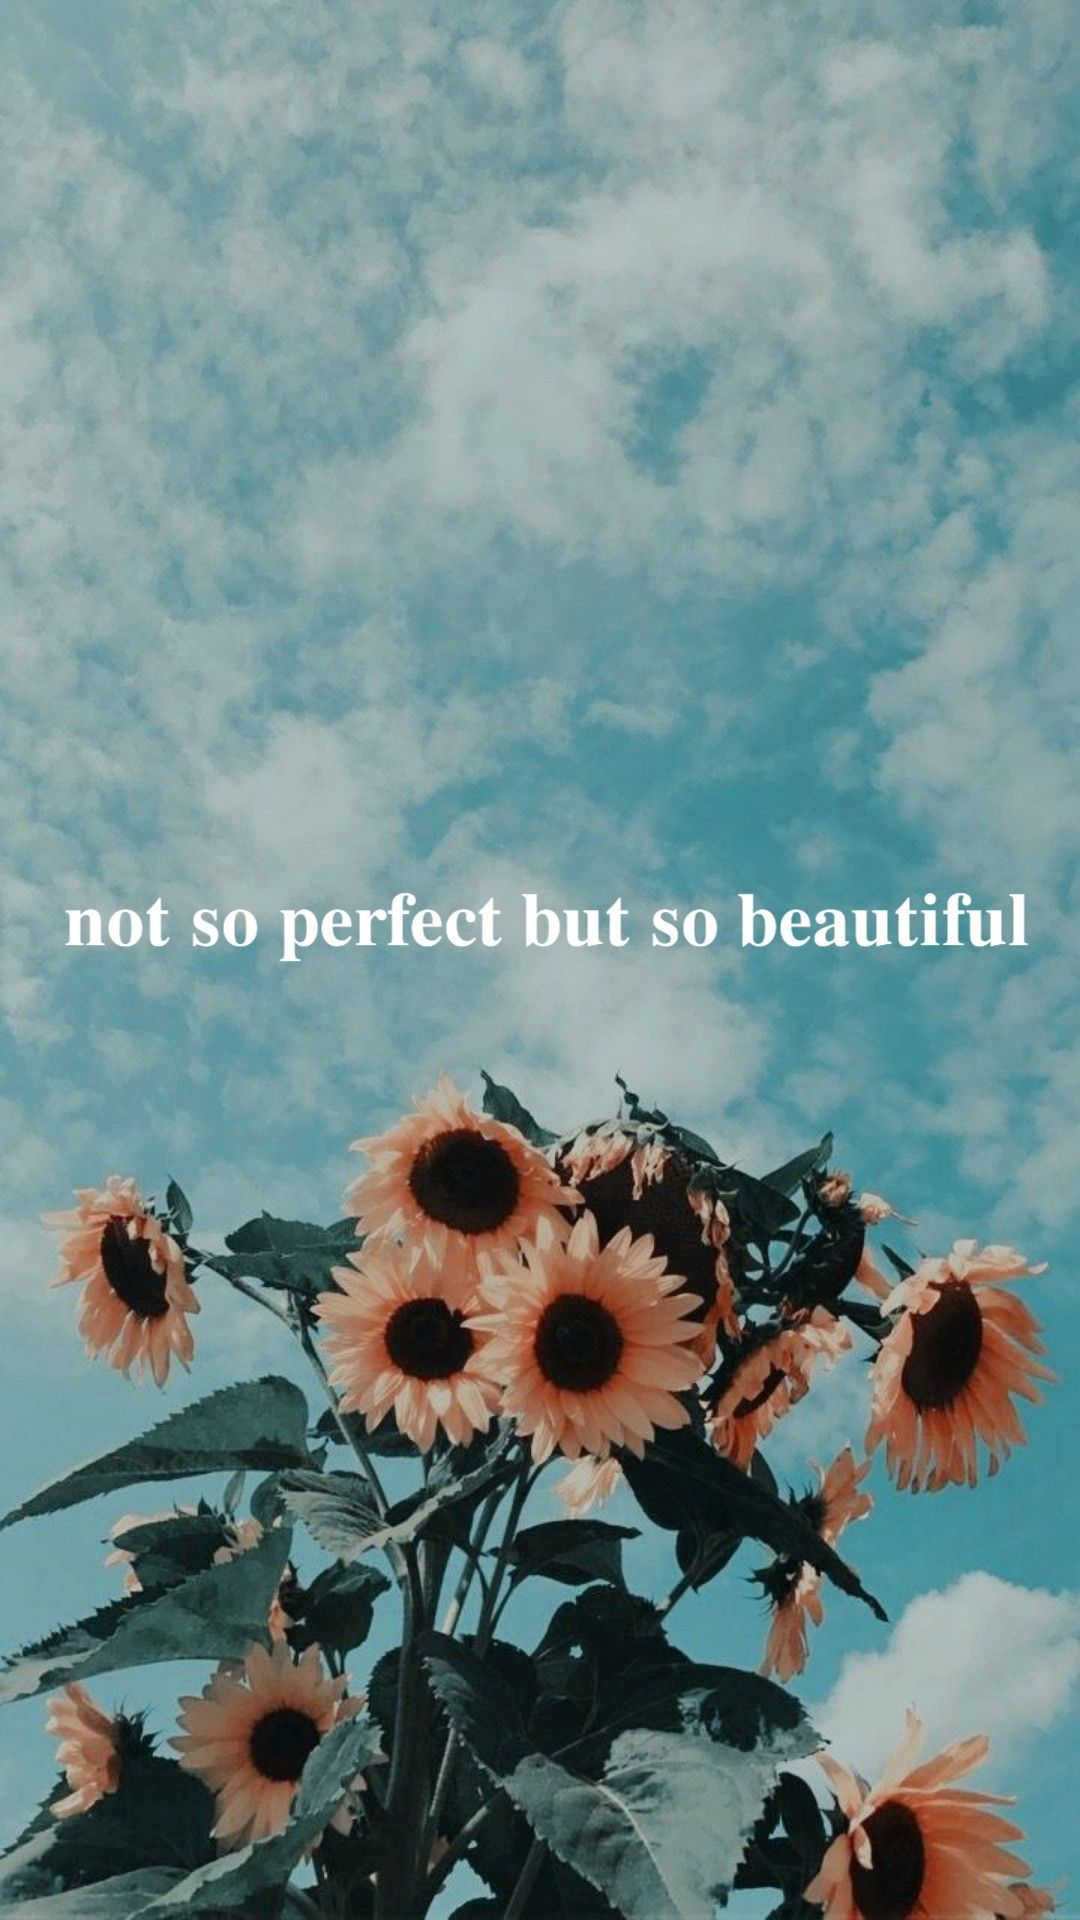 you may not be perfect but I love you just the way you are